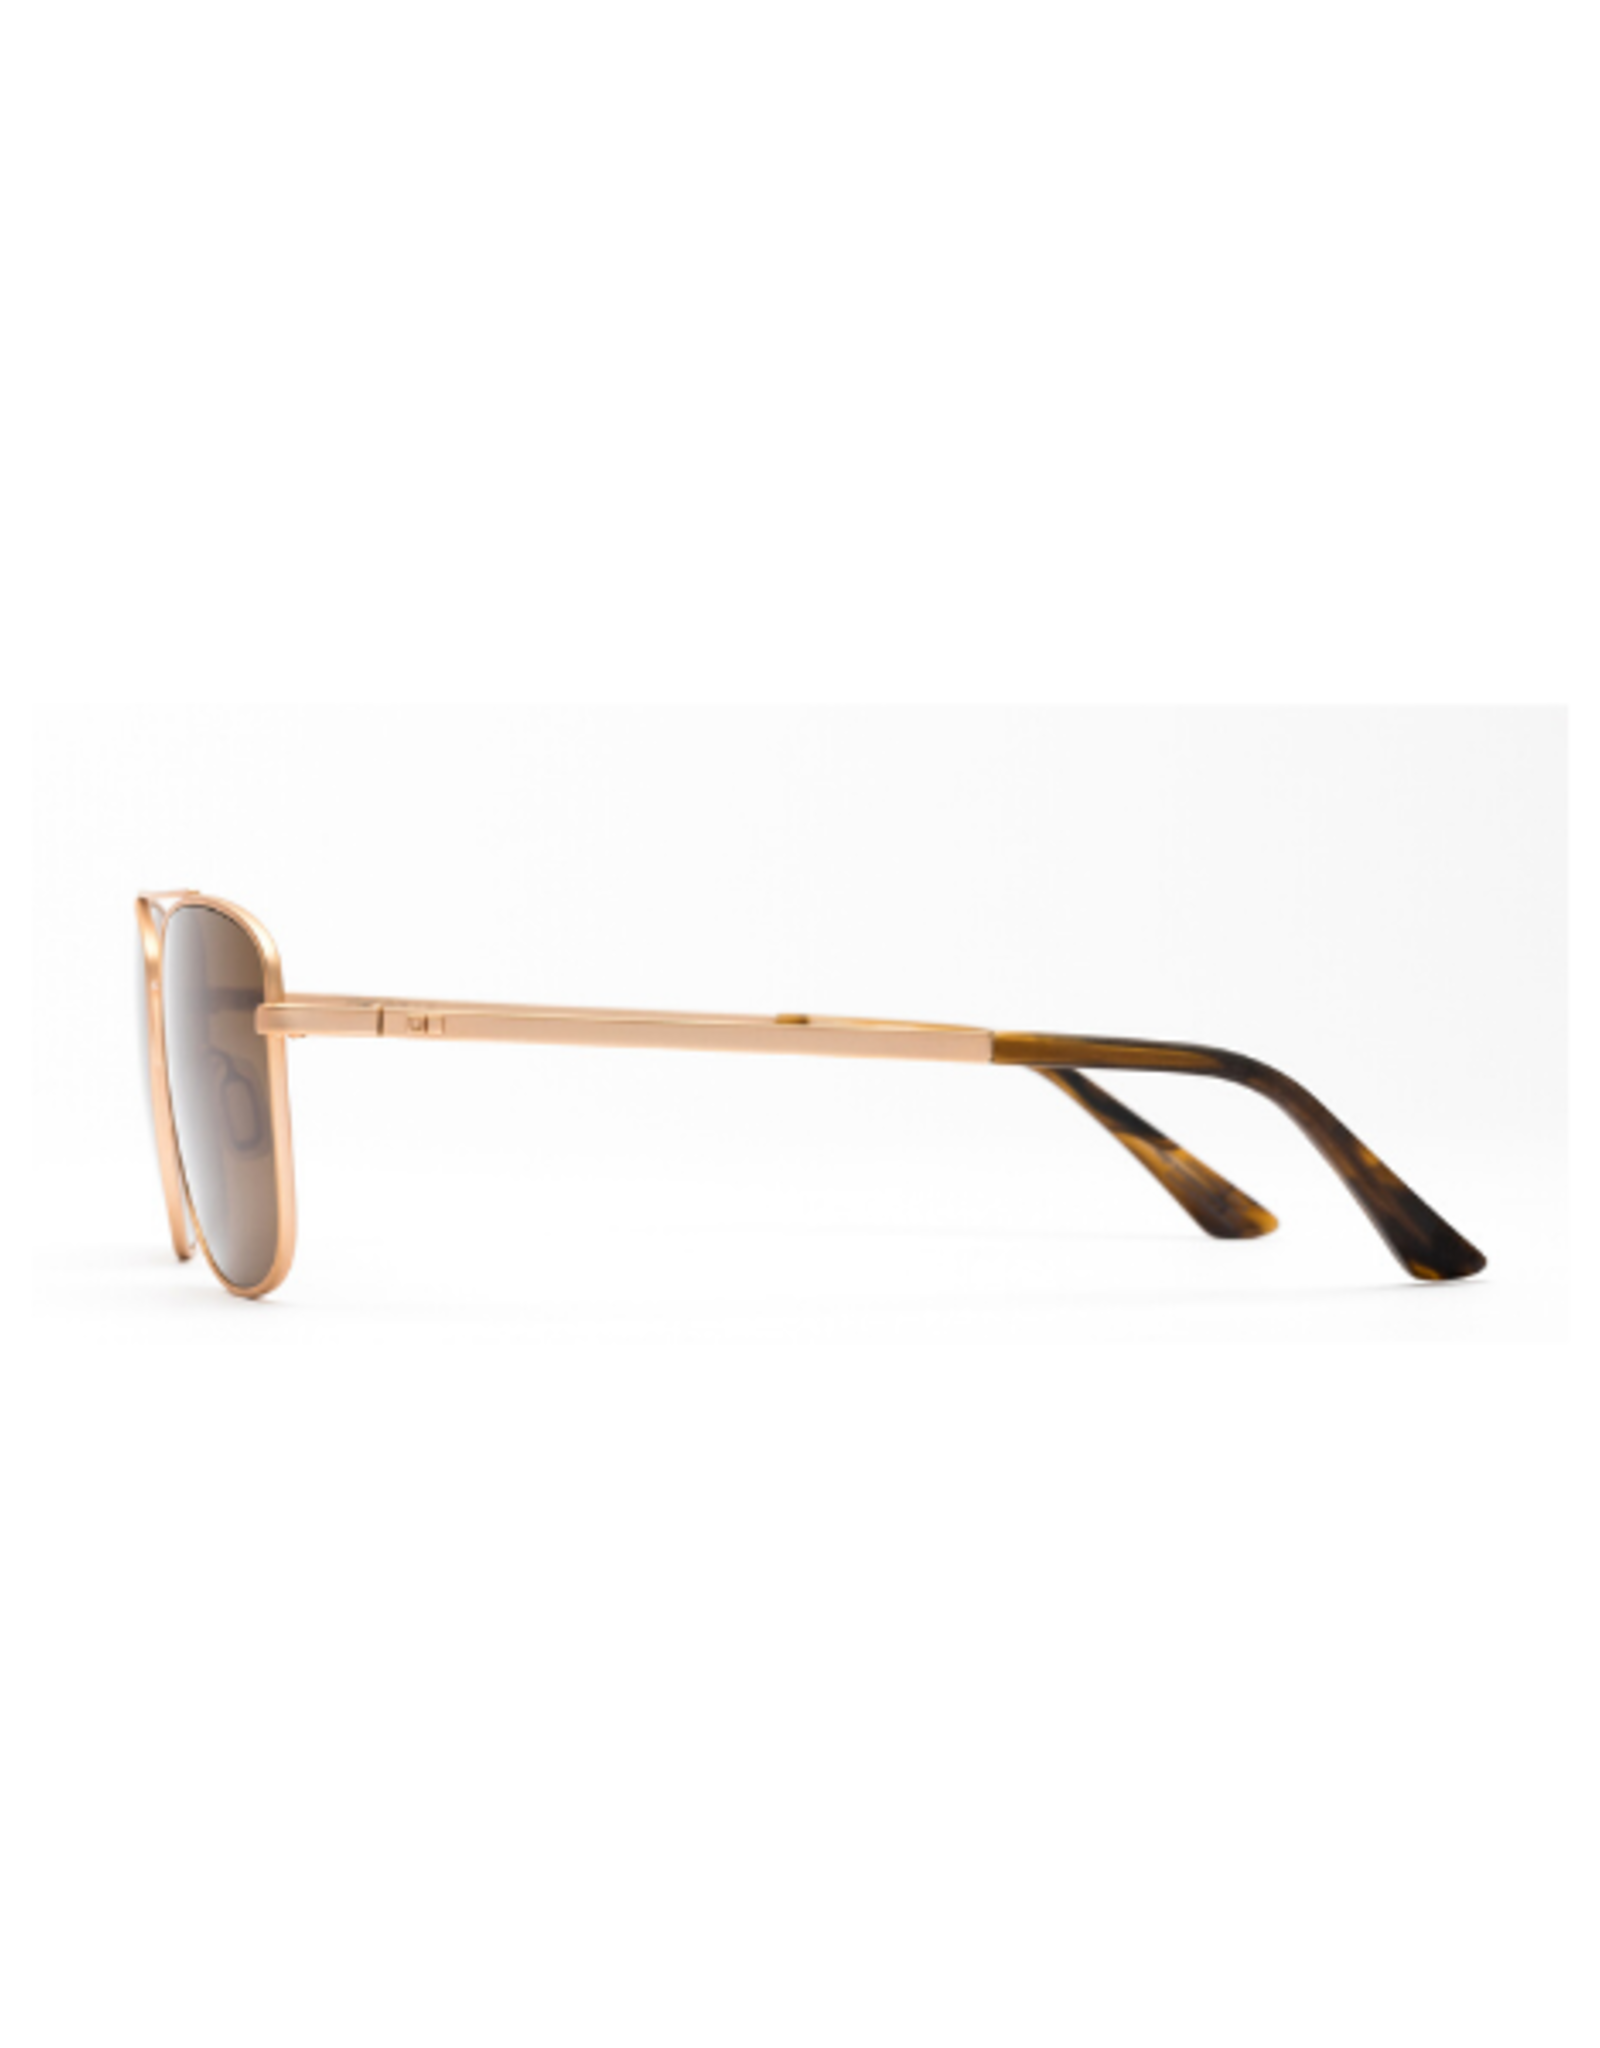 Otis Eyewear 138-2001P In the Fade Matte Gold/Brown Polar